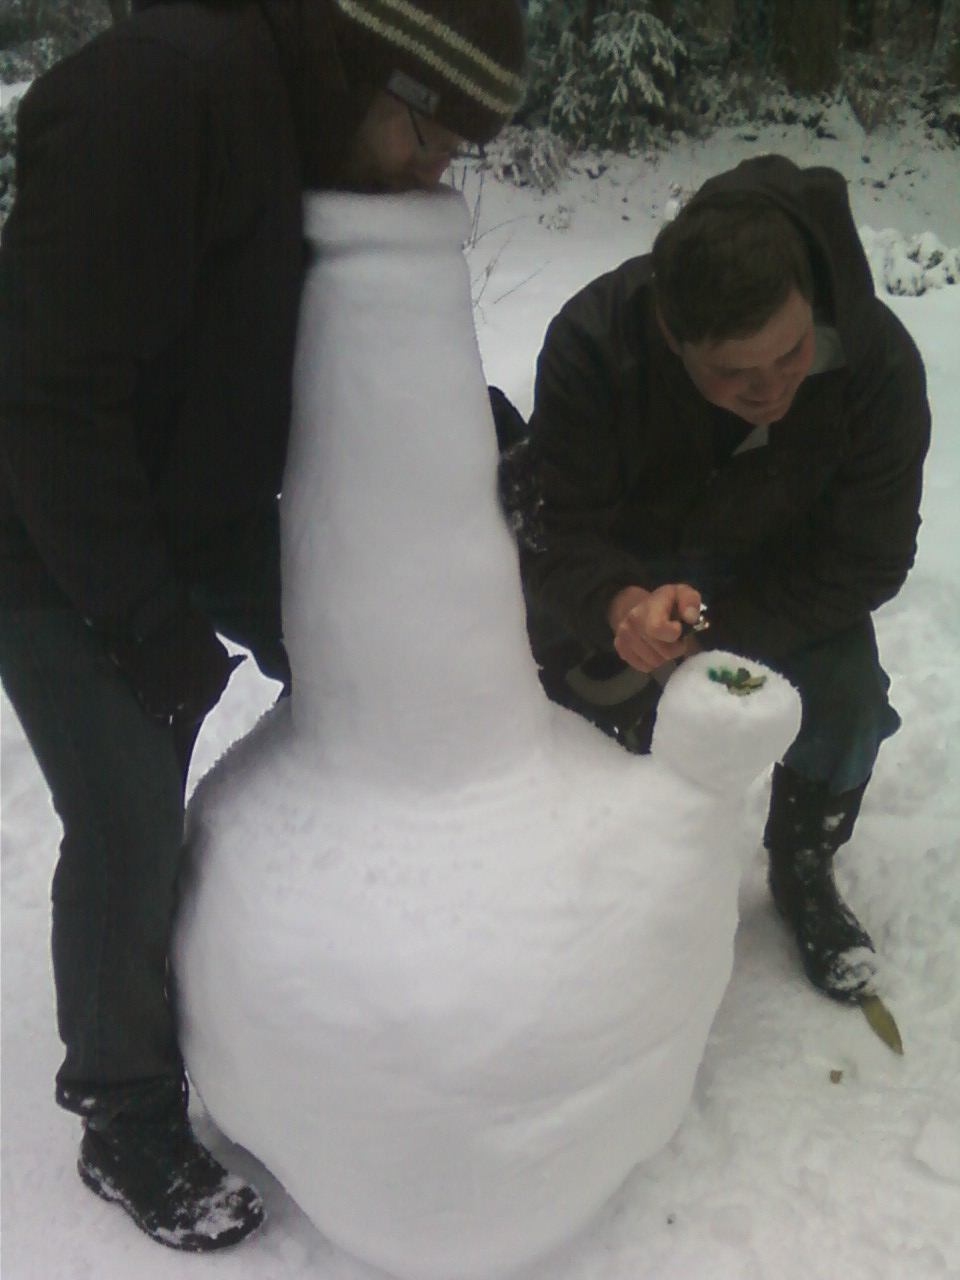 http://www.thcfinder.com/uploads/files/snow-bong-win.jpg